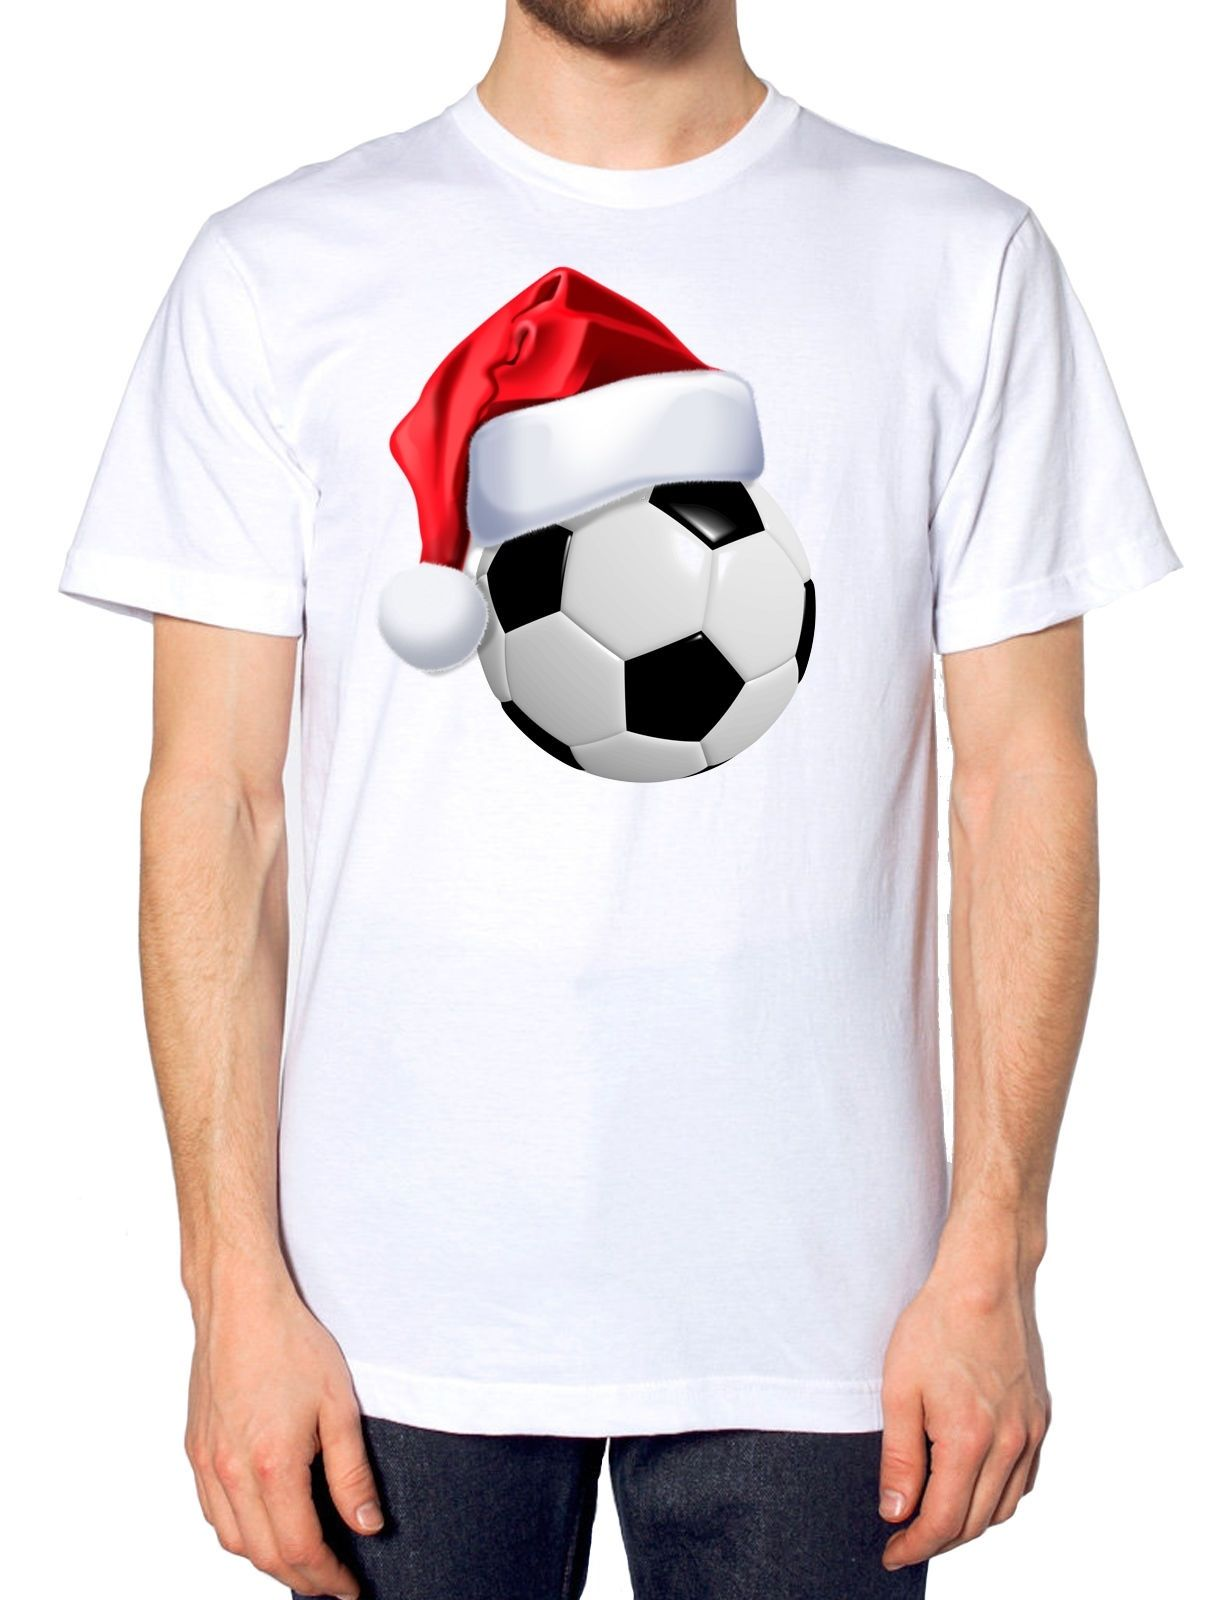 Christmas Santa Hat T Shirt Sportsman Festive Party Novelty Joke Gift